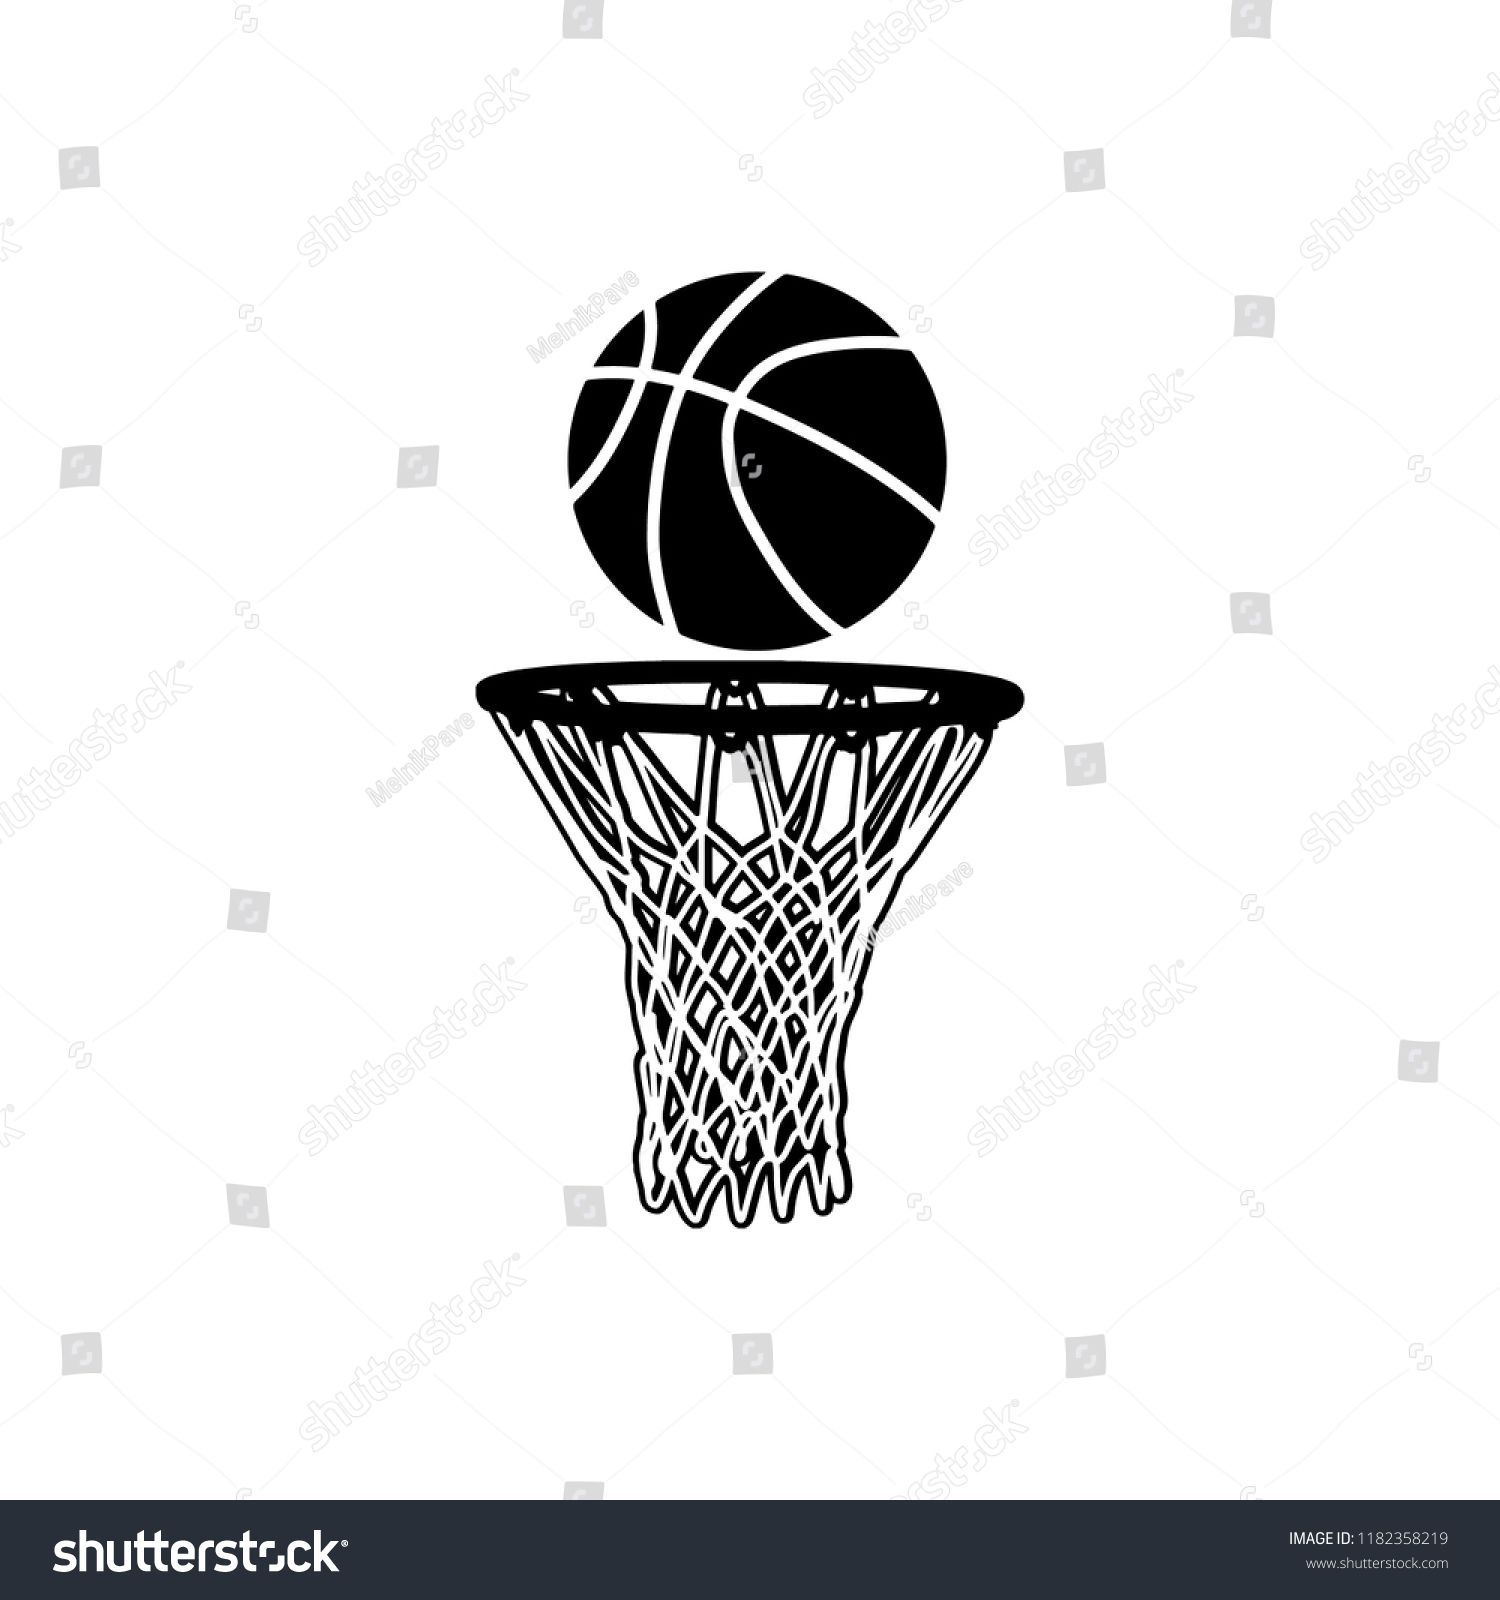 Basketball Doodle Icon Ad Spon Basketball Doodle Icon In 2020 Doodle Icon Vector Illustration Mockup Design